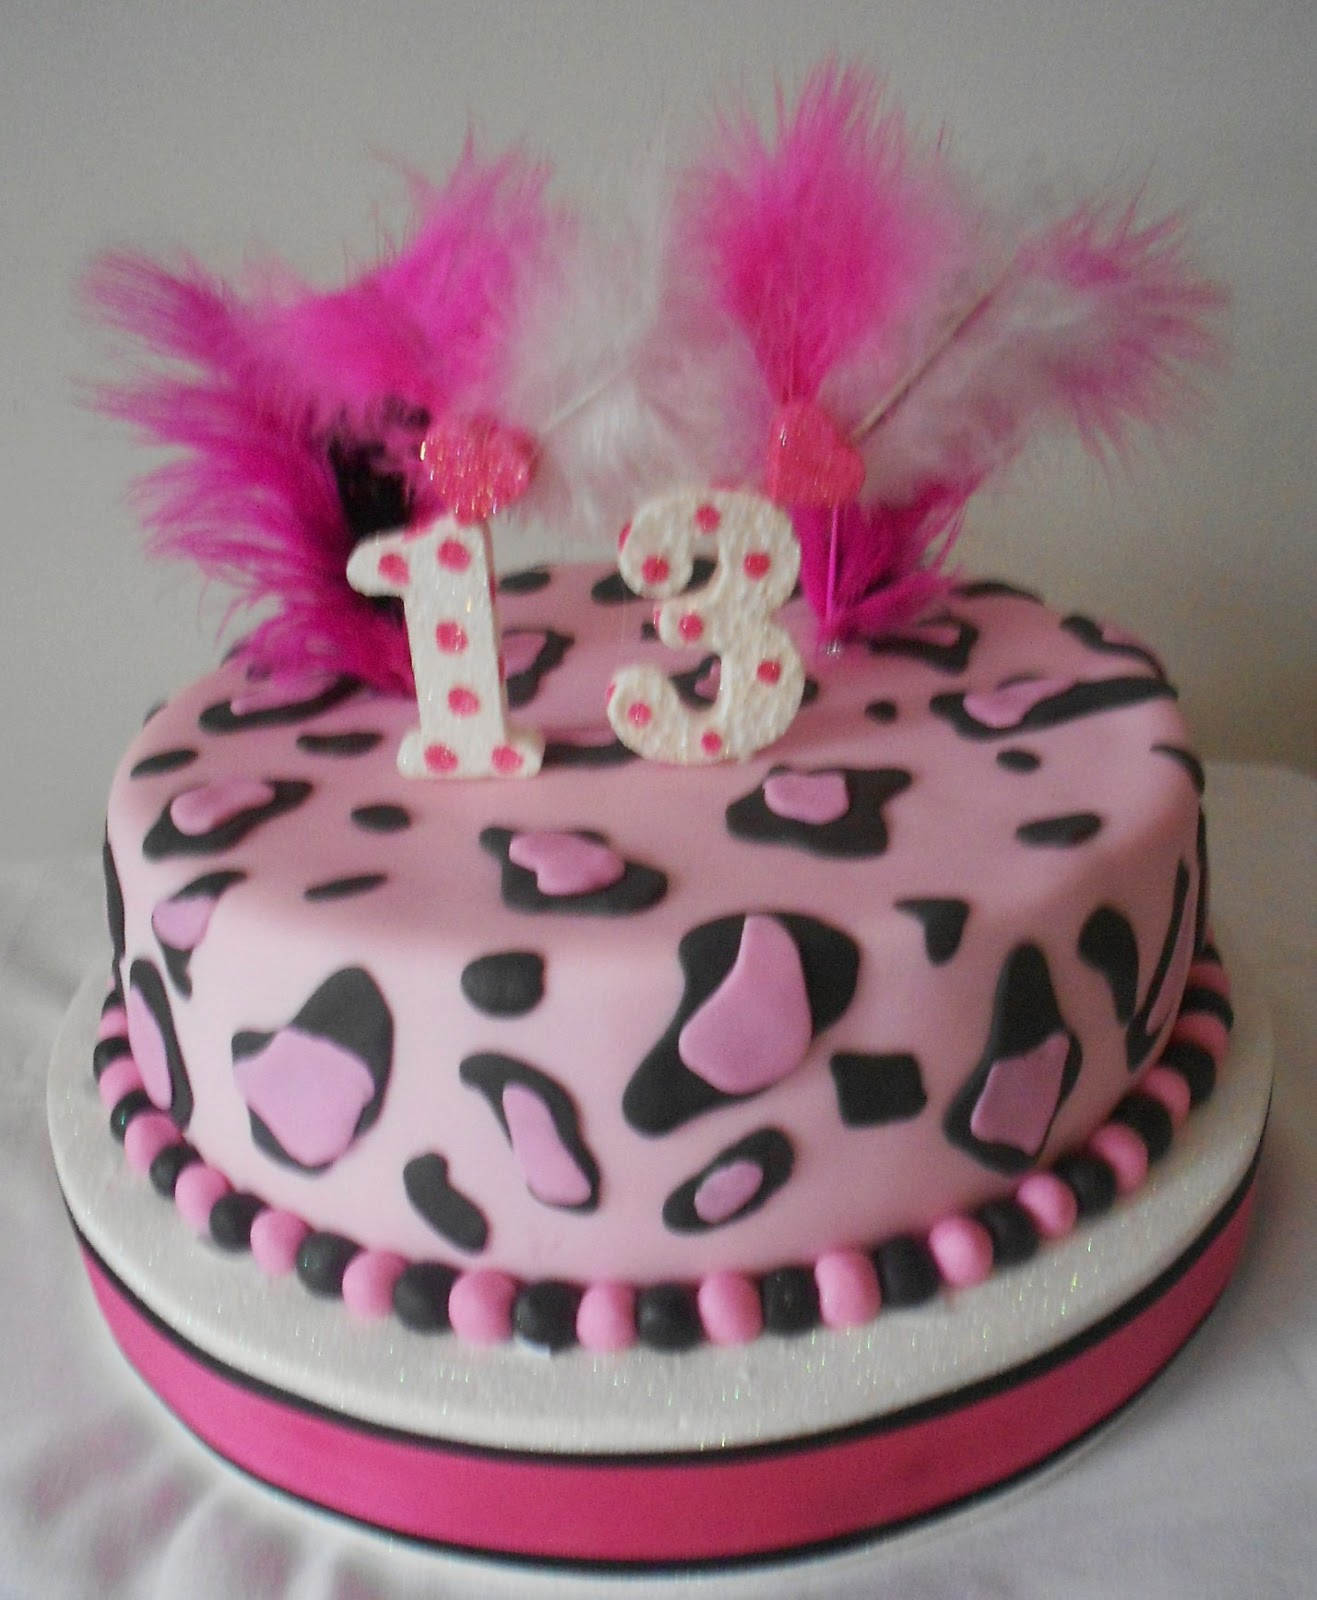 Pin Torta Animal Print Leopardo Paso A Pasopng on Pinterest